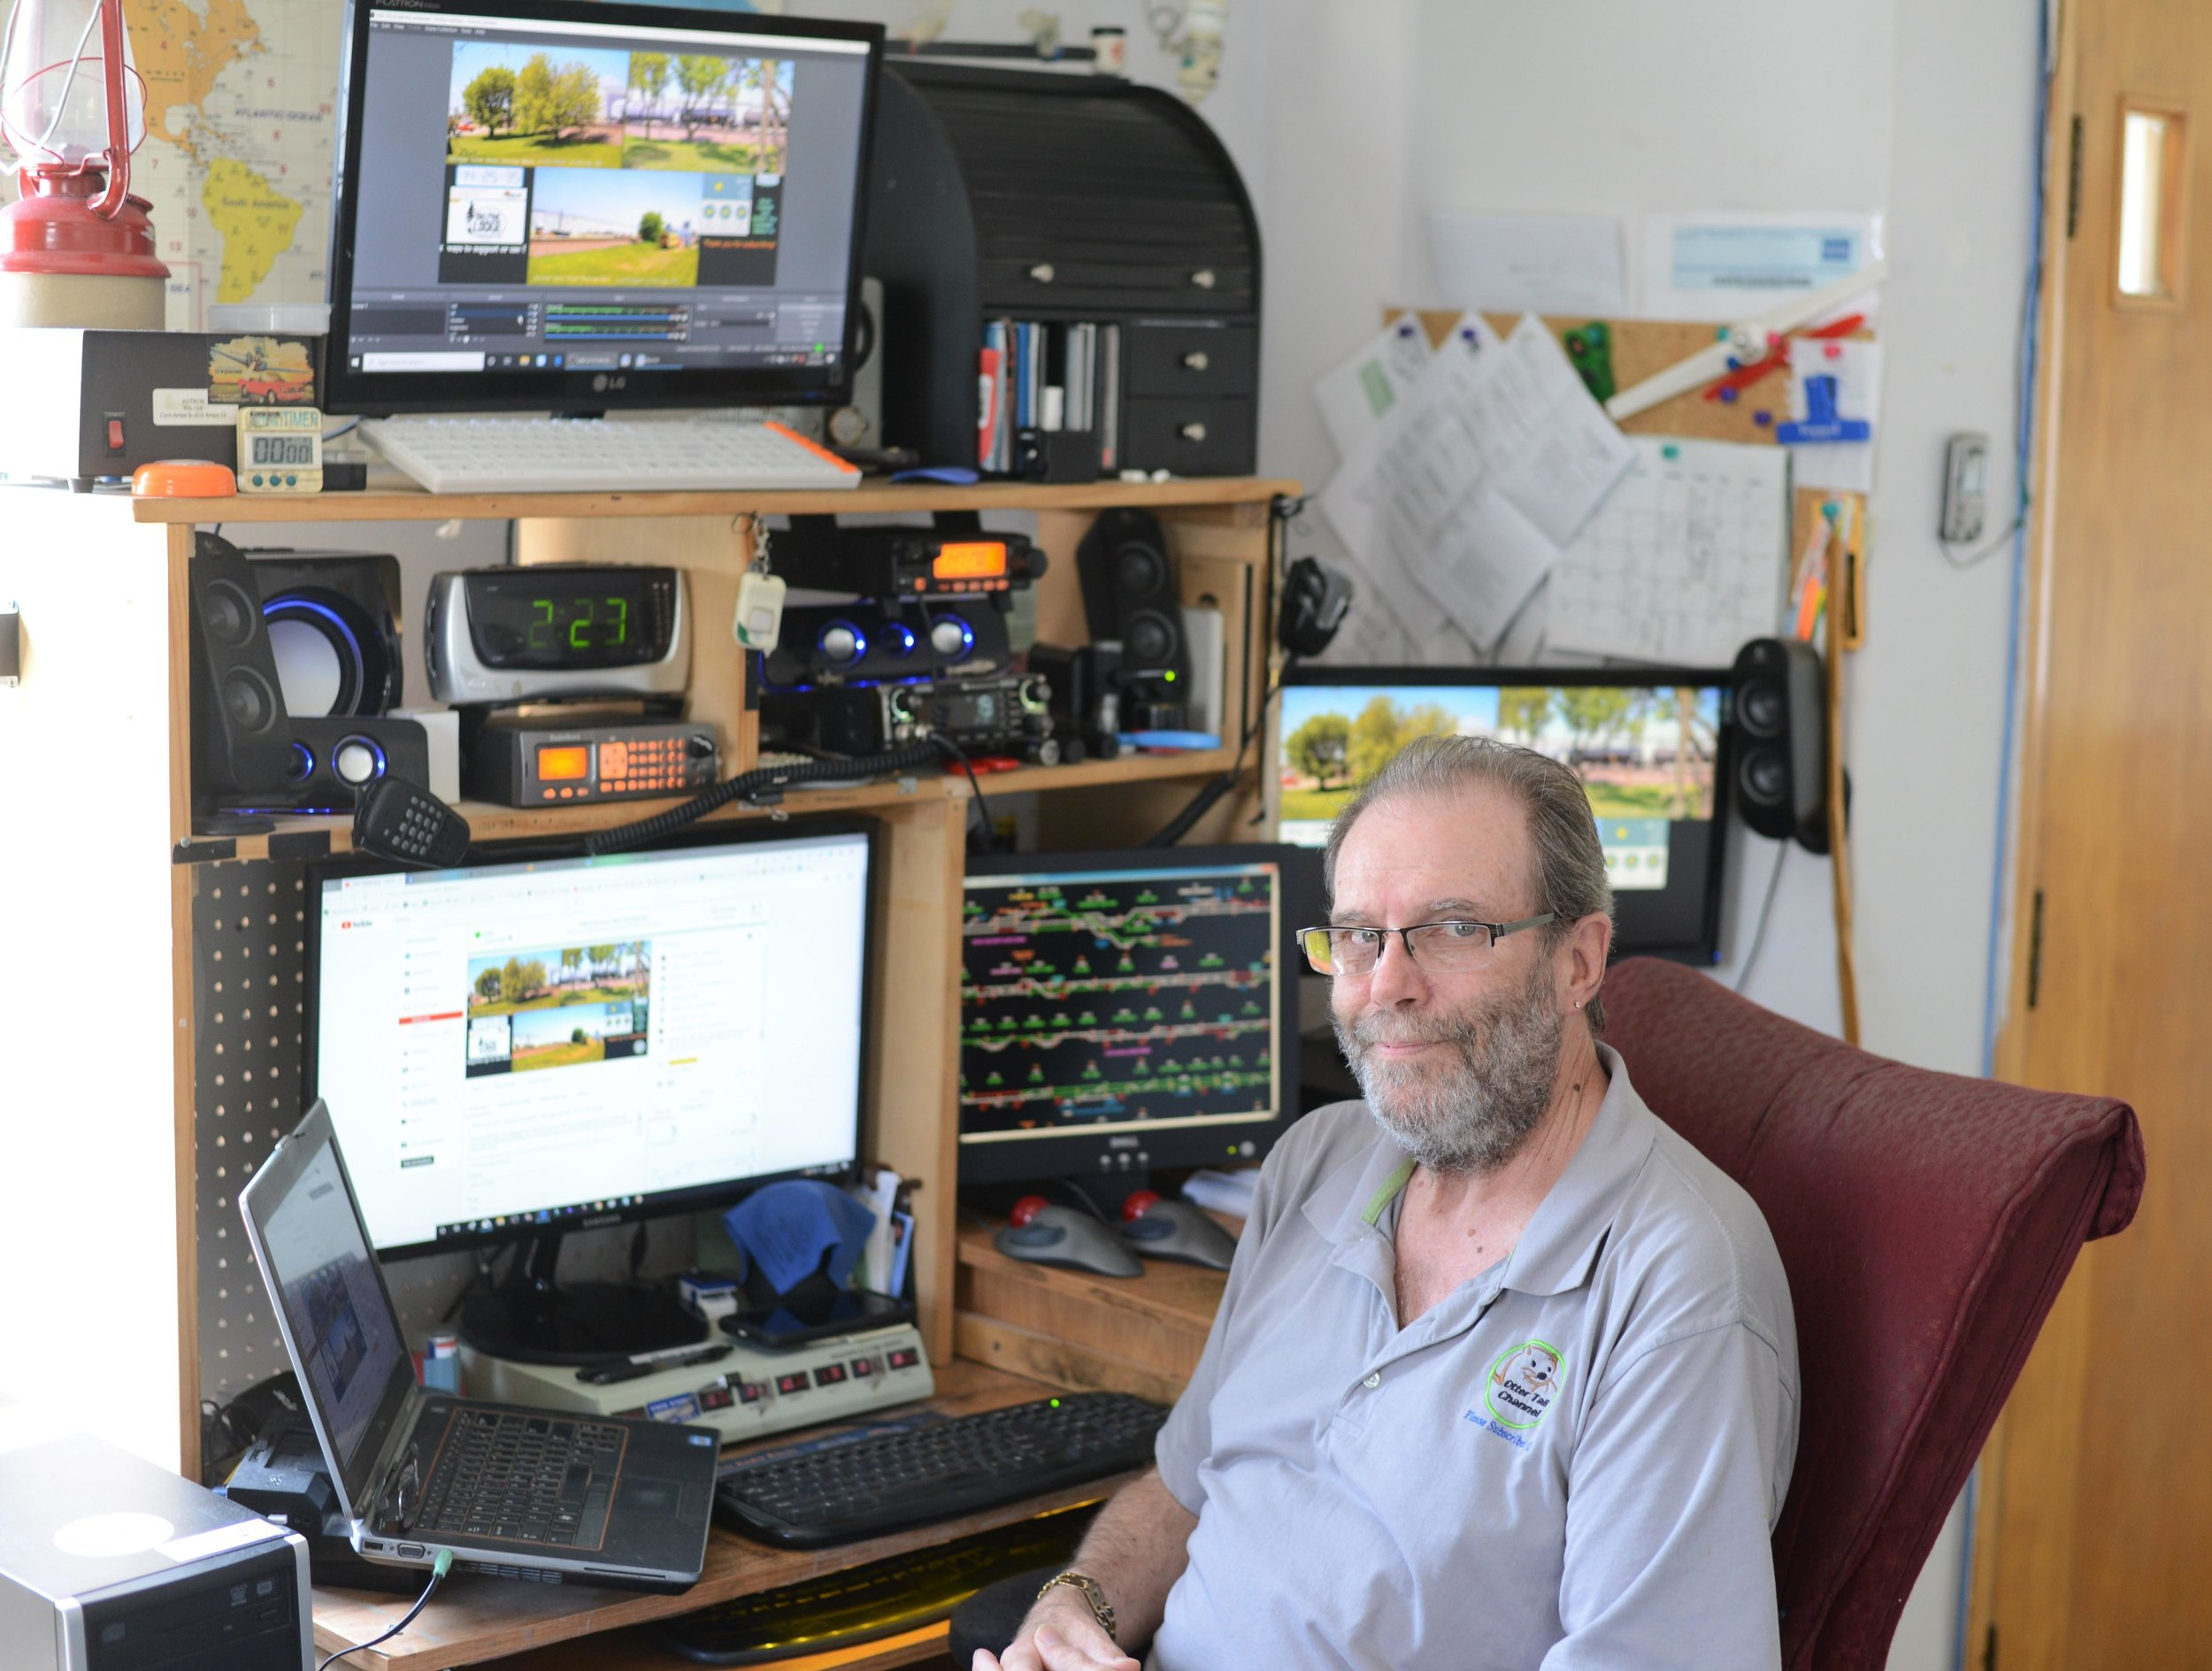 Rich Lee runs Otter Tail Channel out of his home on Main Street. Three cameras capture all of the trains going in and out of Perham for viewers across the world to watch. (Carter Jones/ FOCUS)